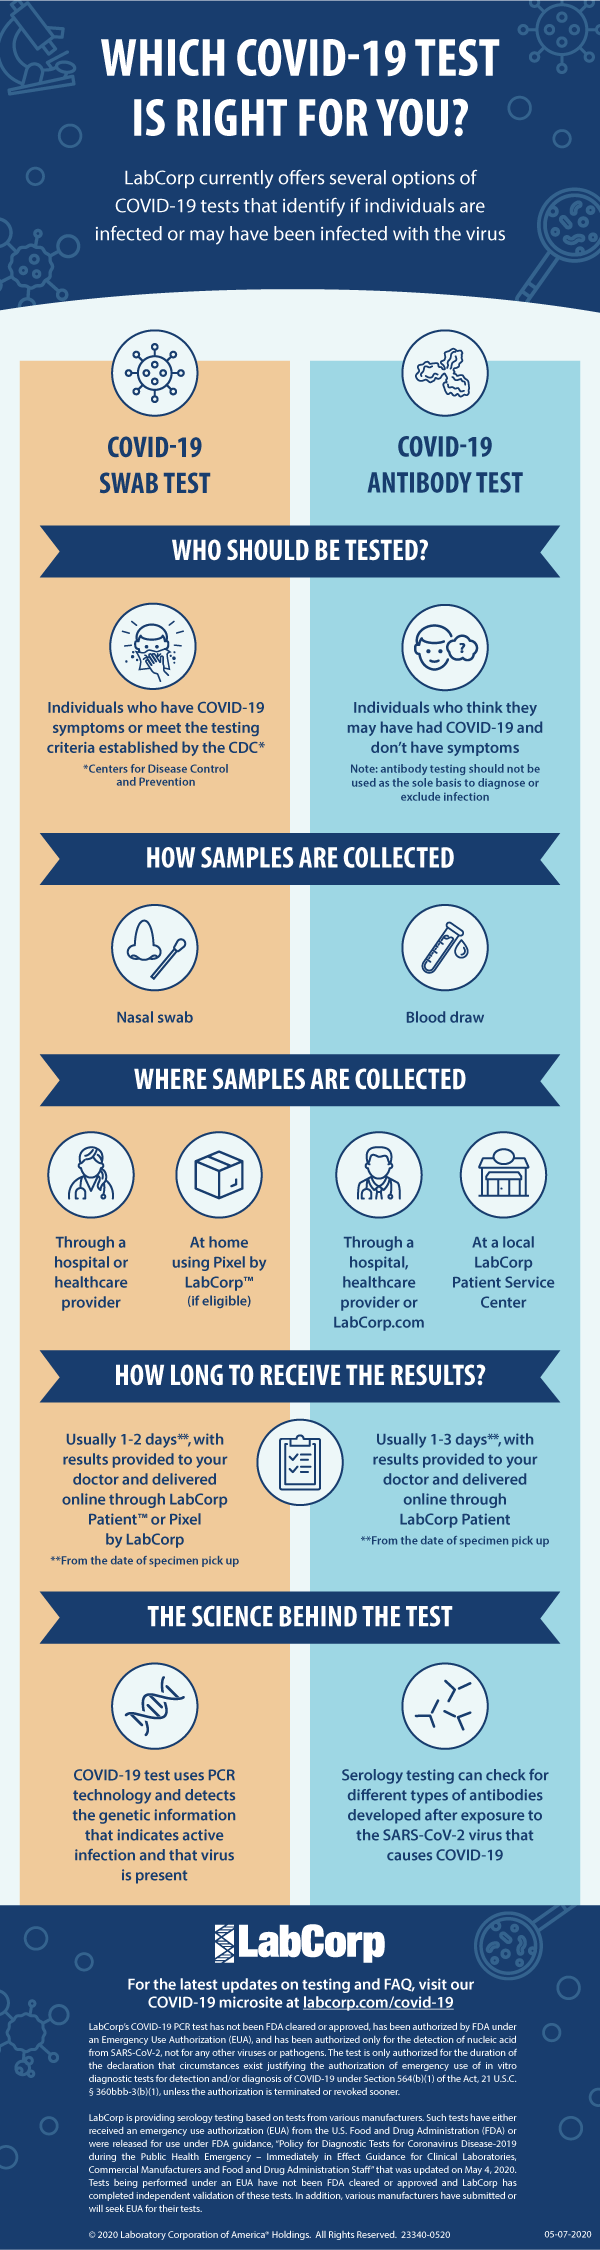 LabCorp_Testing_Infographic